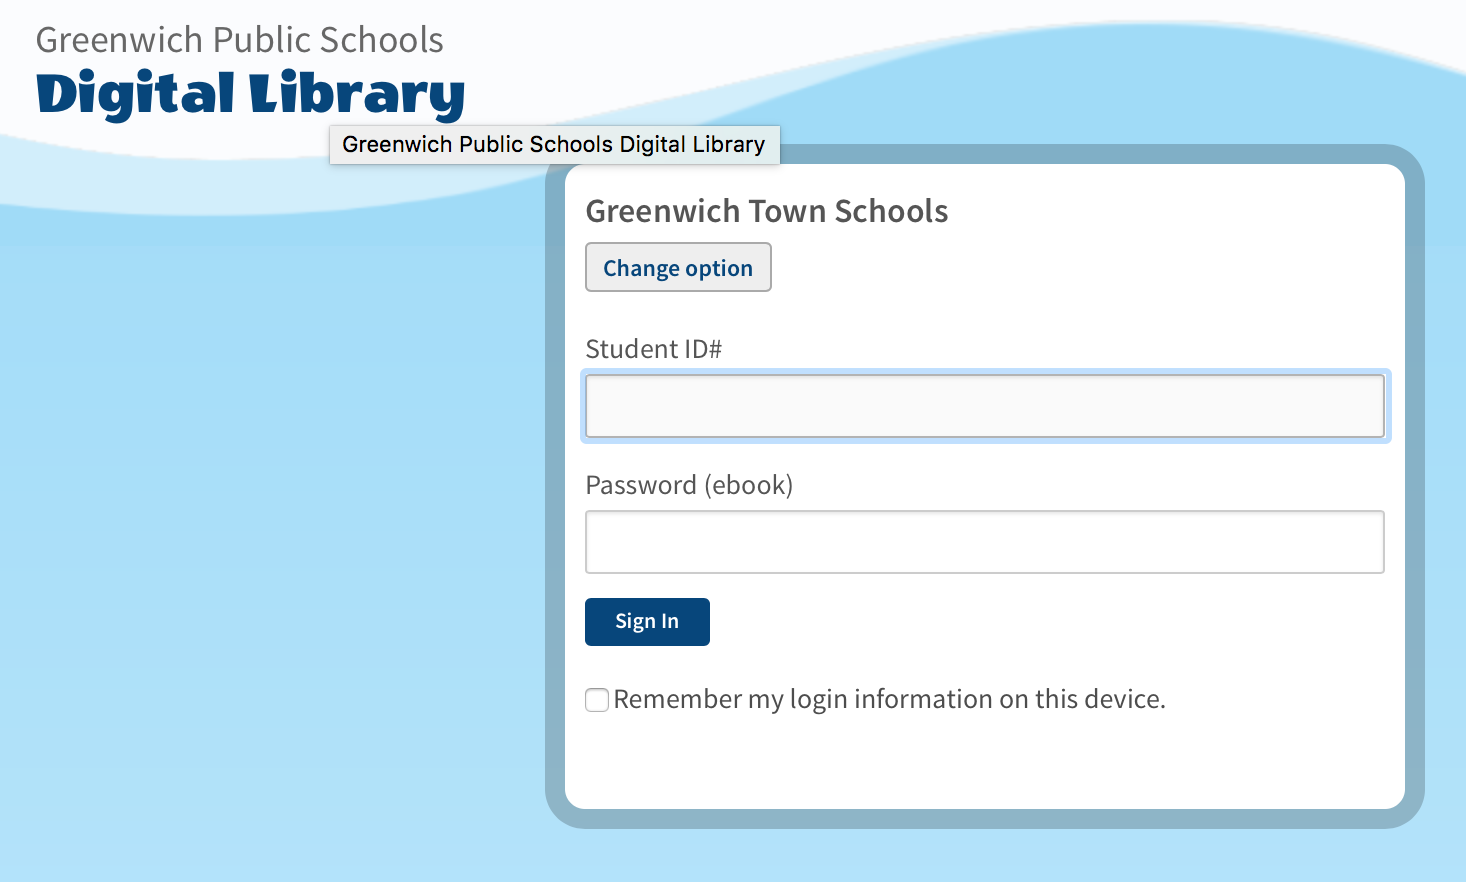 screenshot of the homepage for the Greenwich Public Schools Digital Library